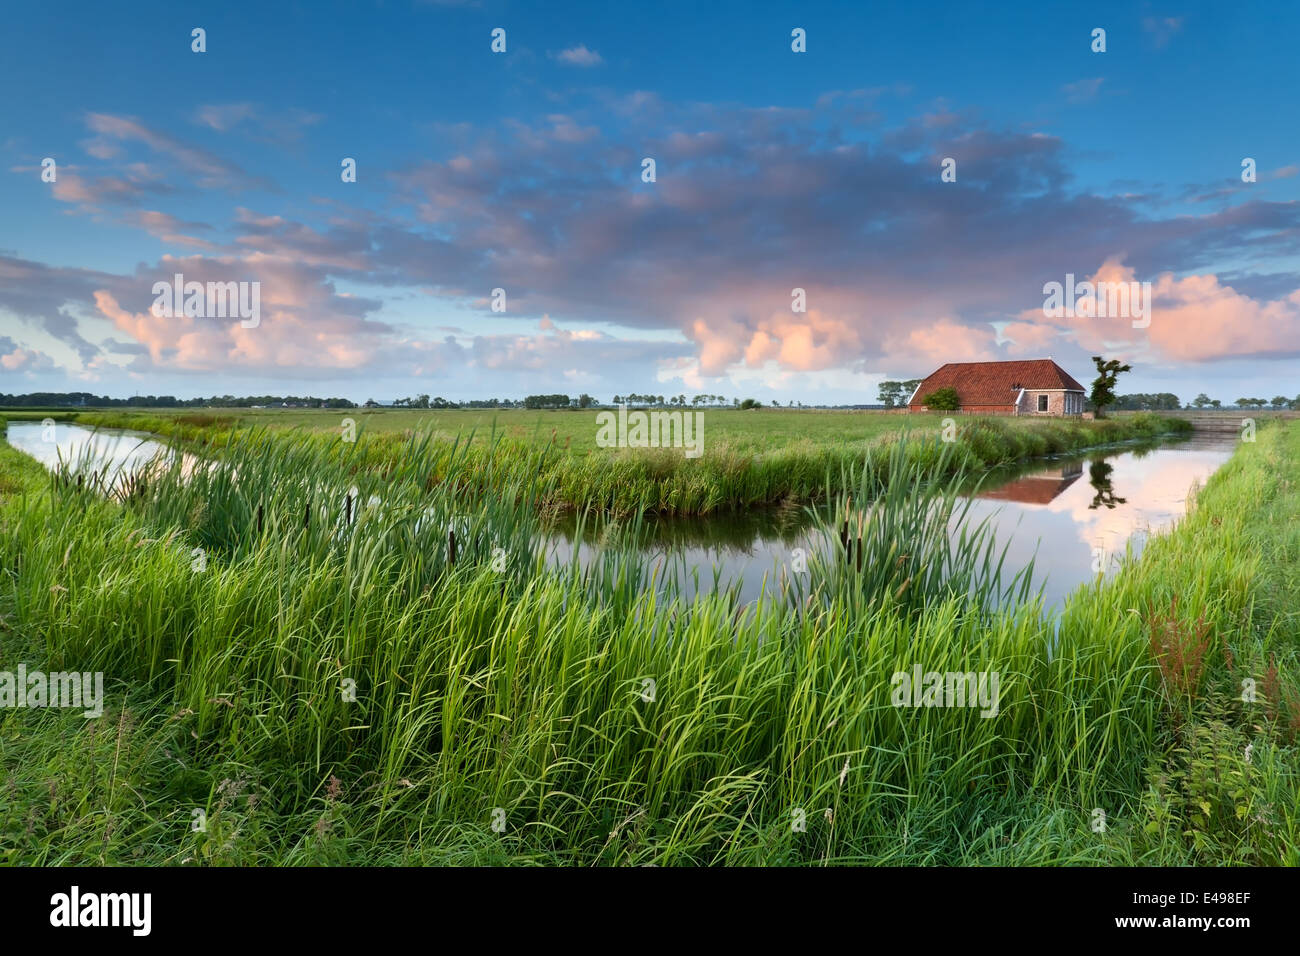 charming farmhouse by river at sunset, Netherlands - Stock Image